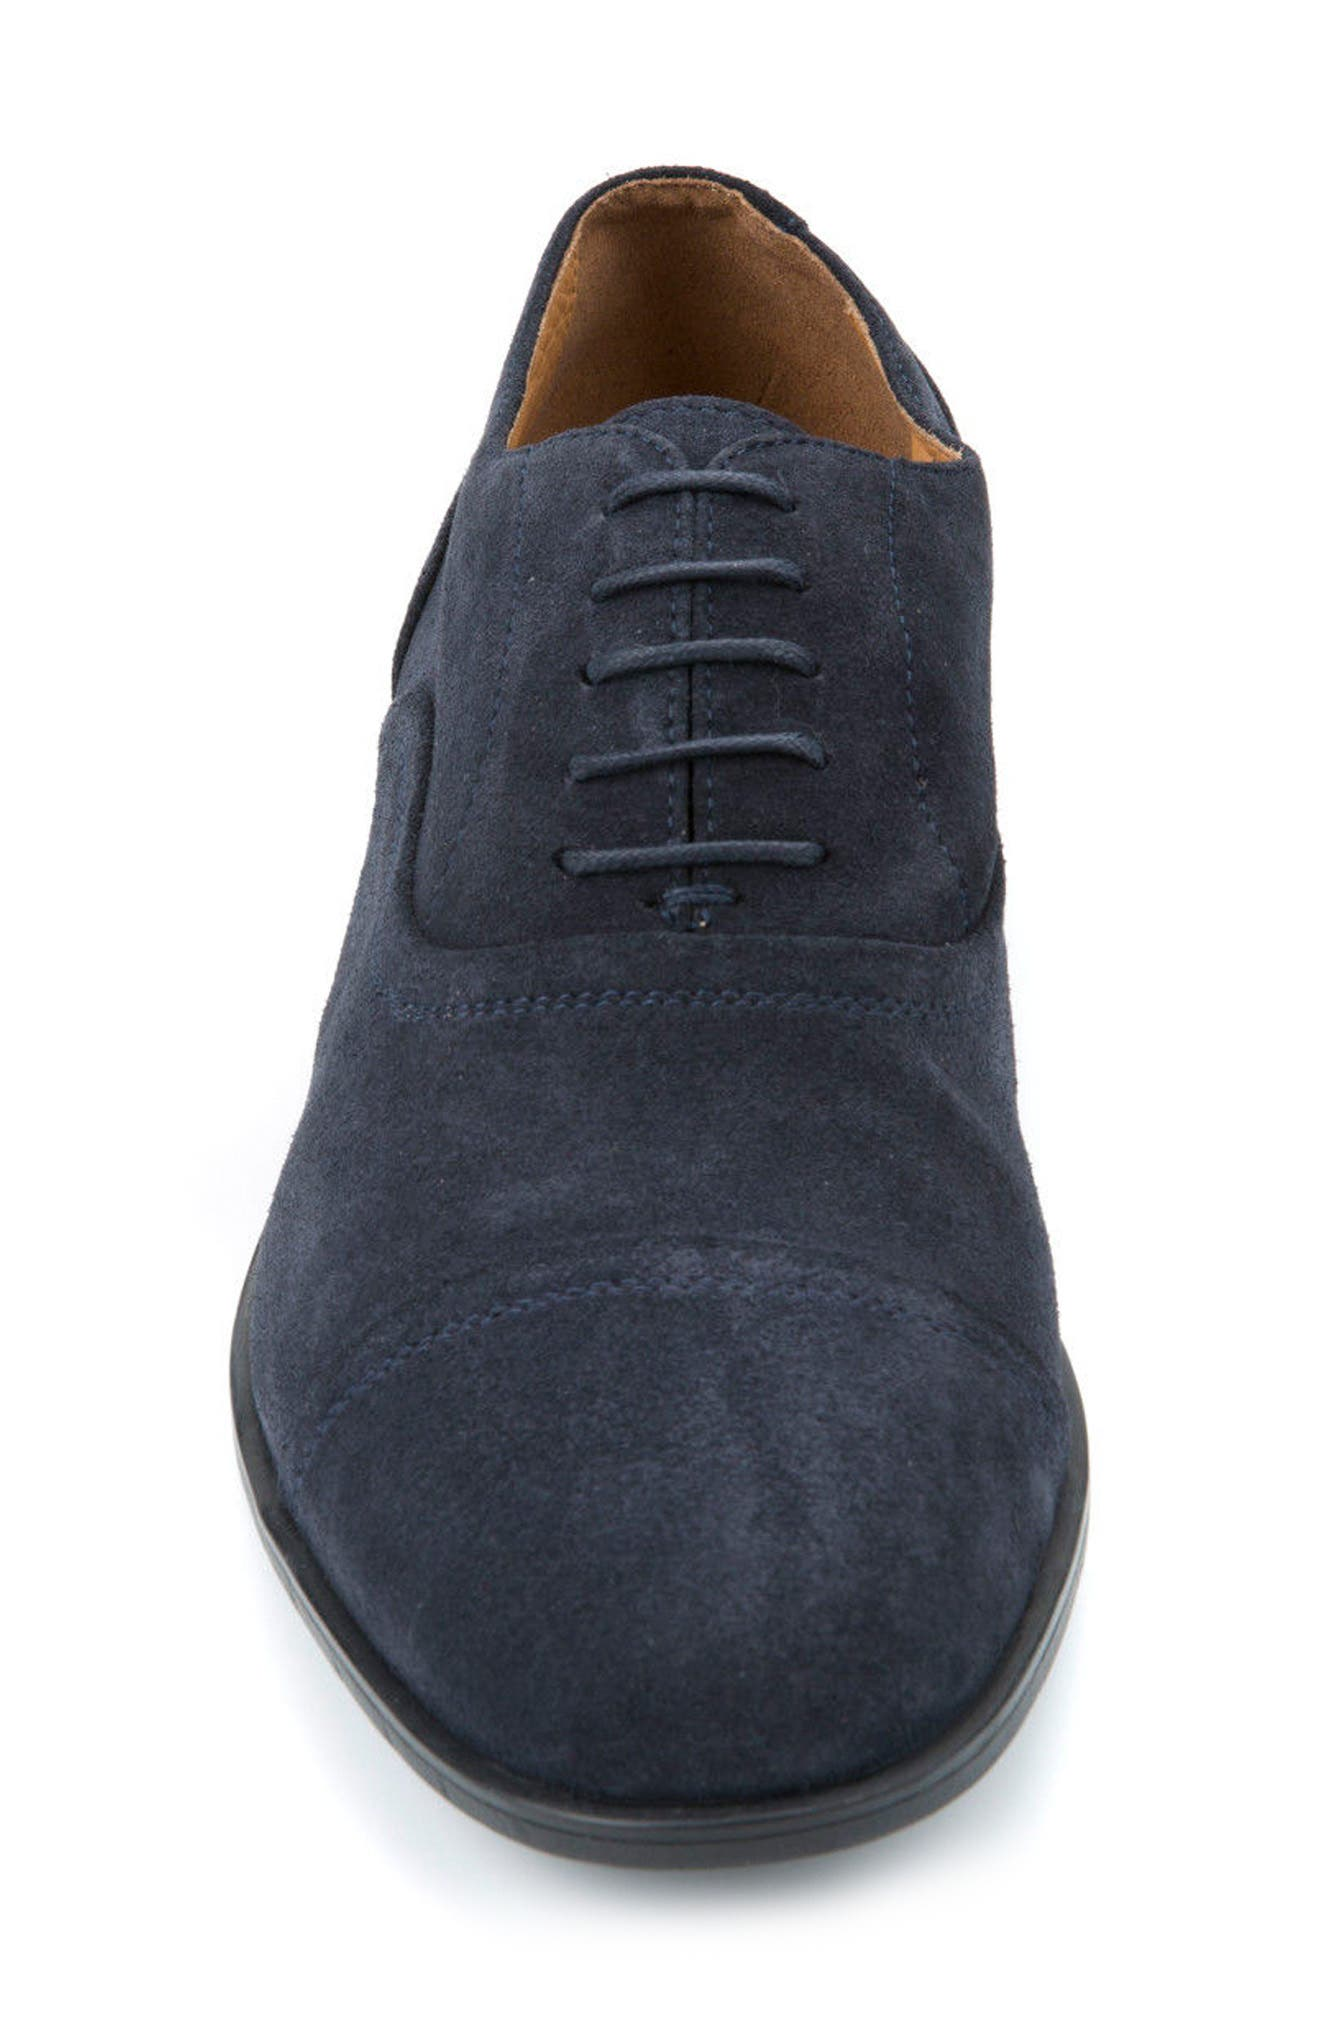 Bryceton 2 Cap Toe Oxford,                             Alternate thumbnail 4, color,                             Navy Suede